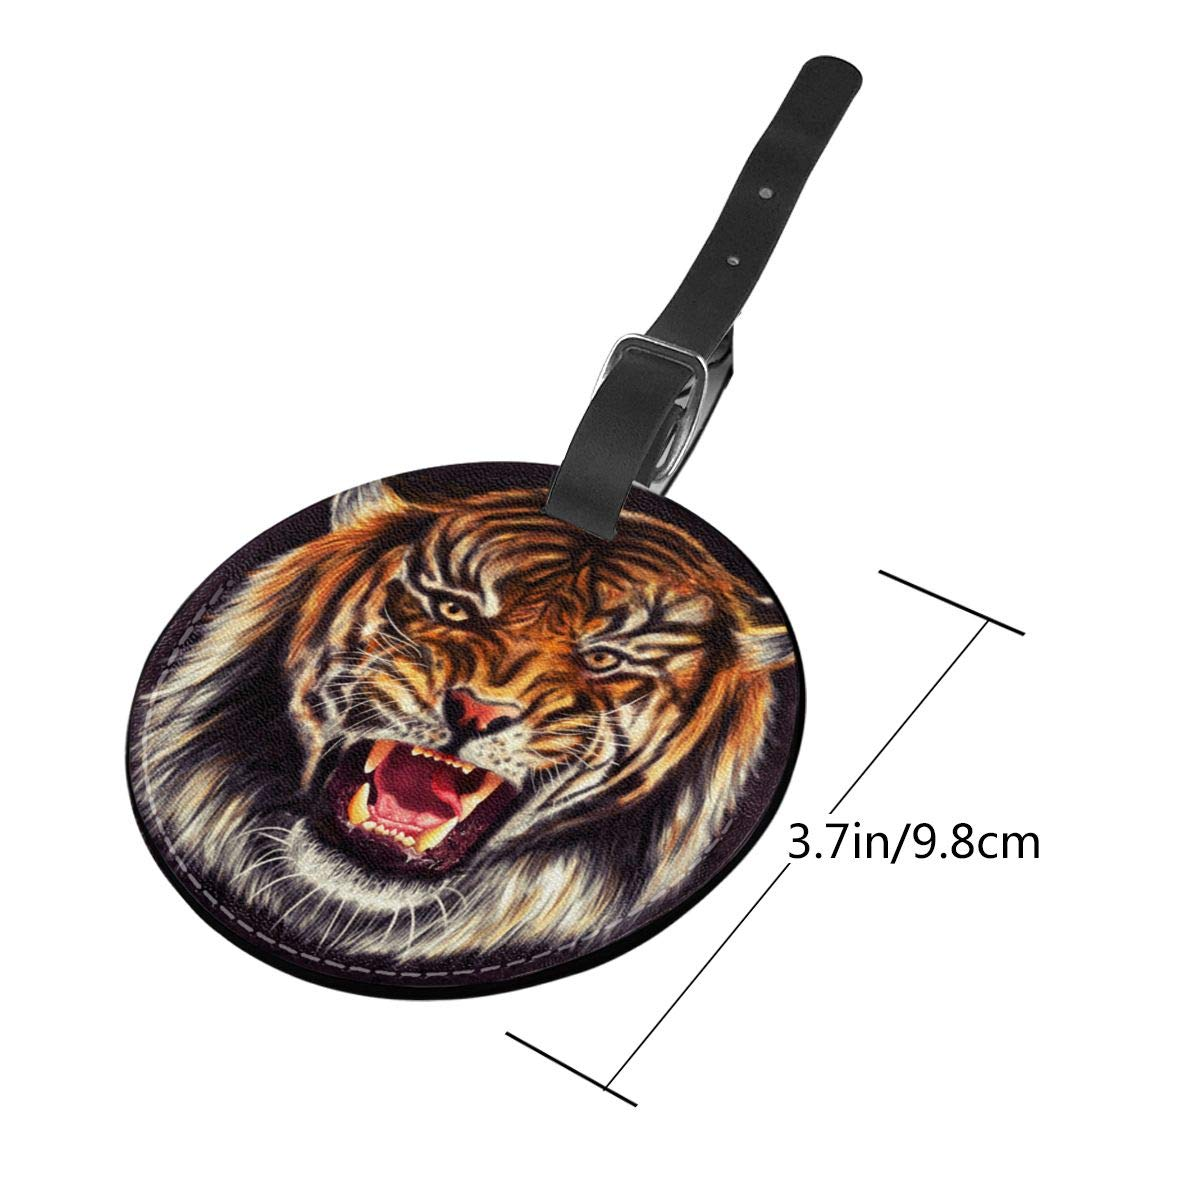 Jinsshop 4 PCS Leather Luggage Tag With Name ID Card Perfect To Quickly Spot Luggage Suitcase Tiger